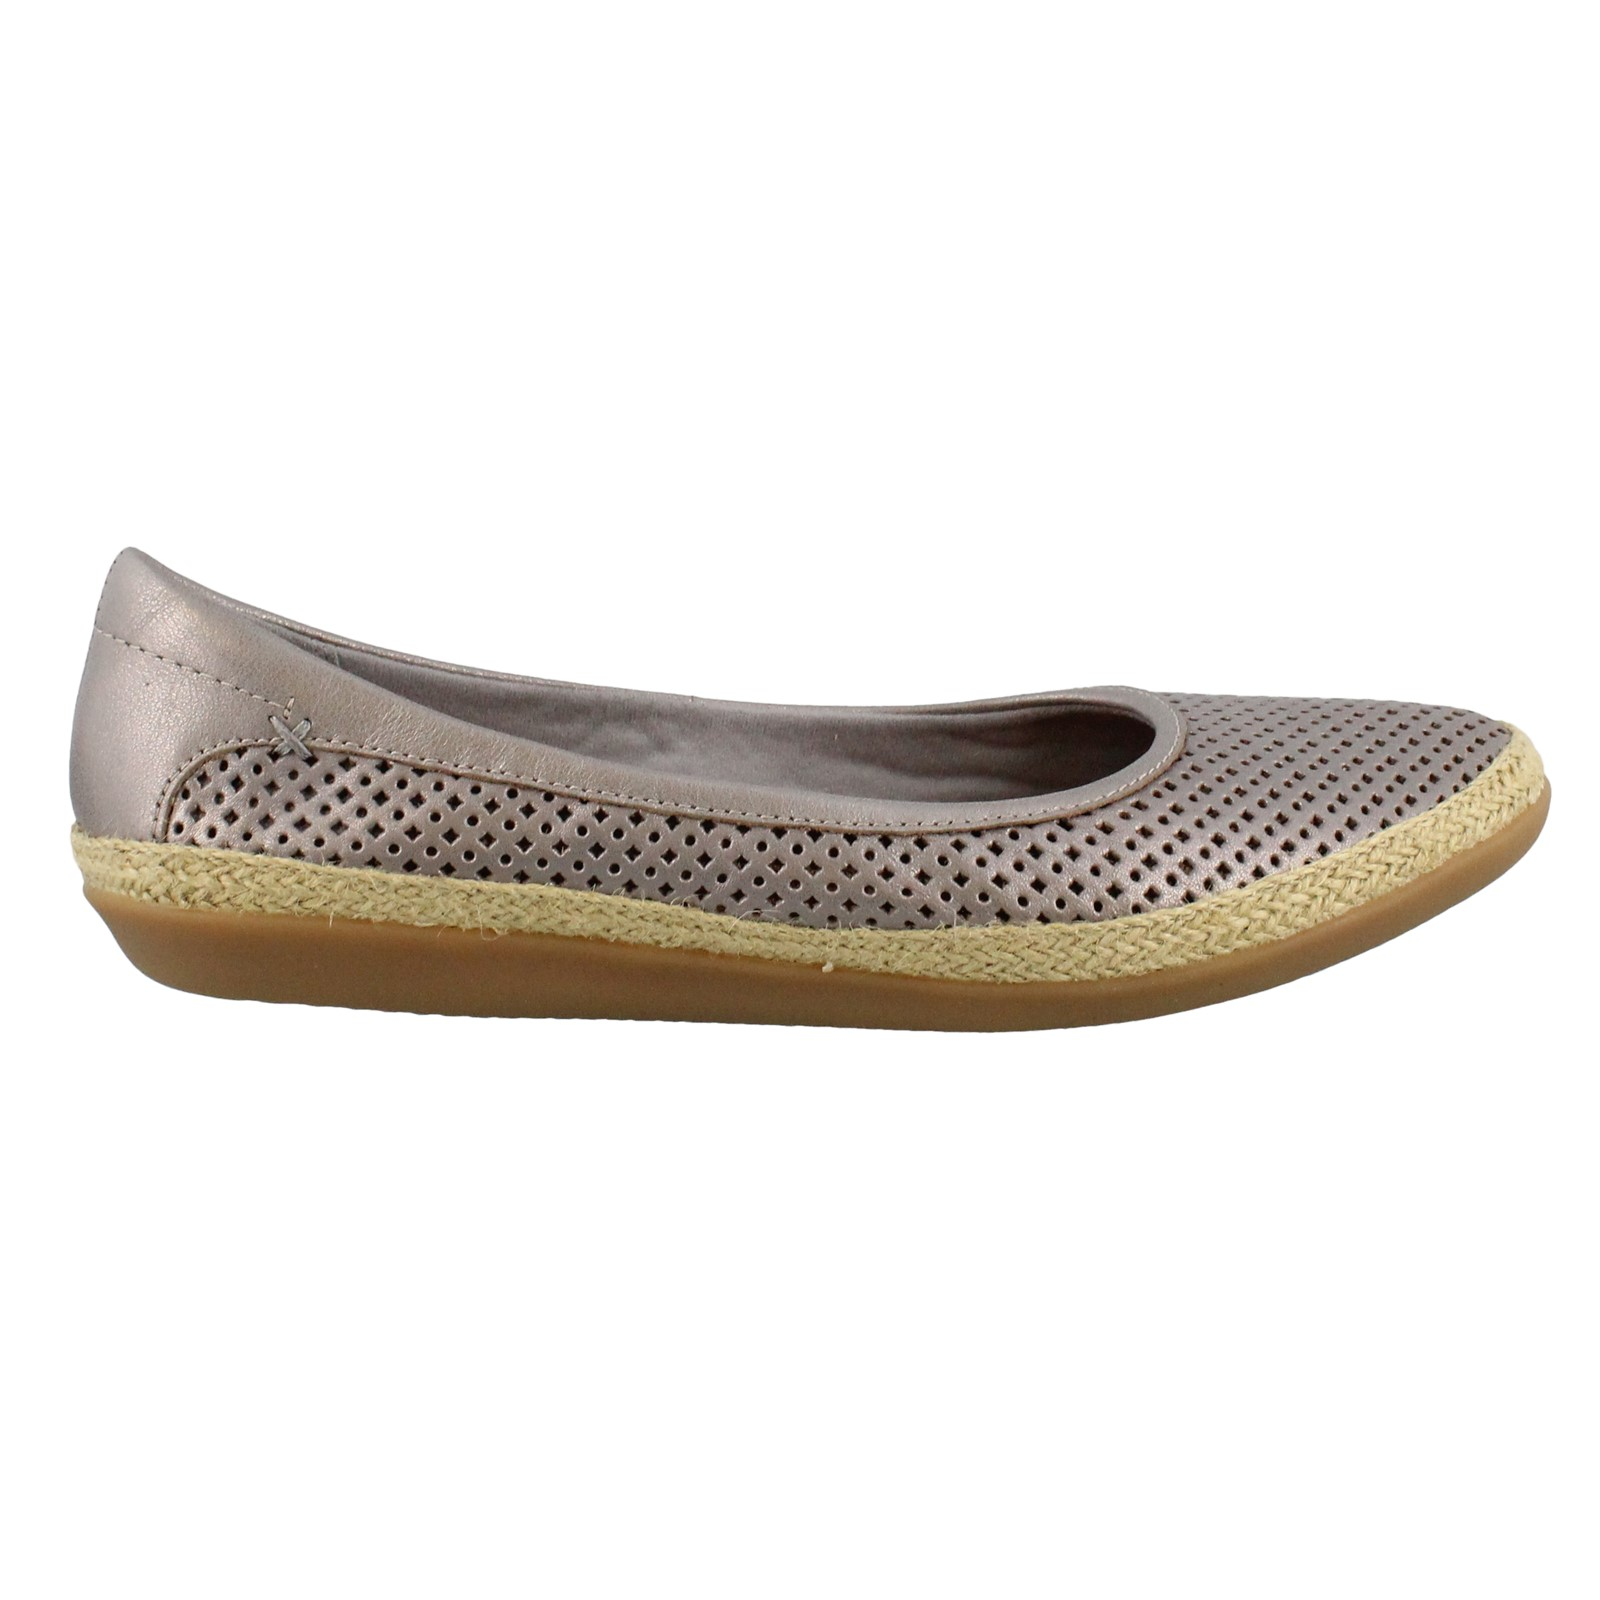 Women's Clarks, Danelly Adira Slip on Flats